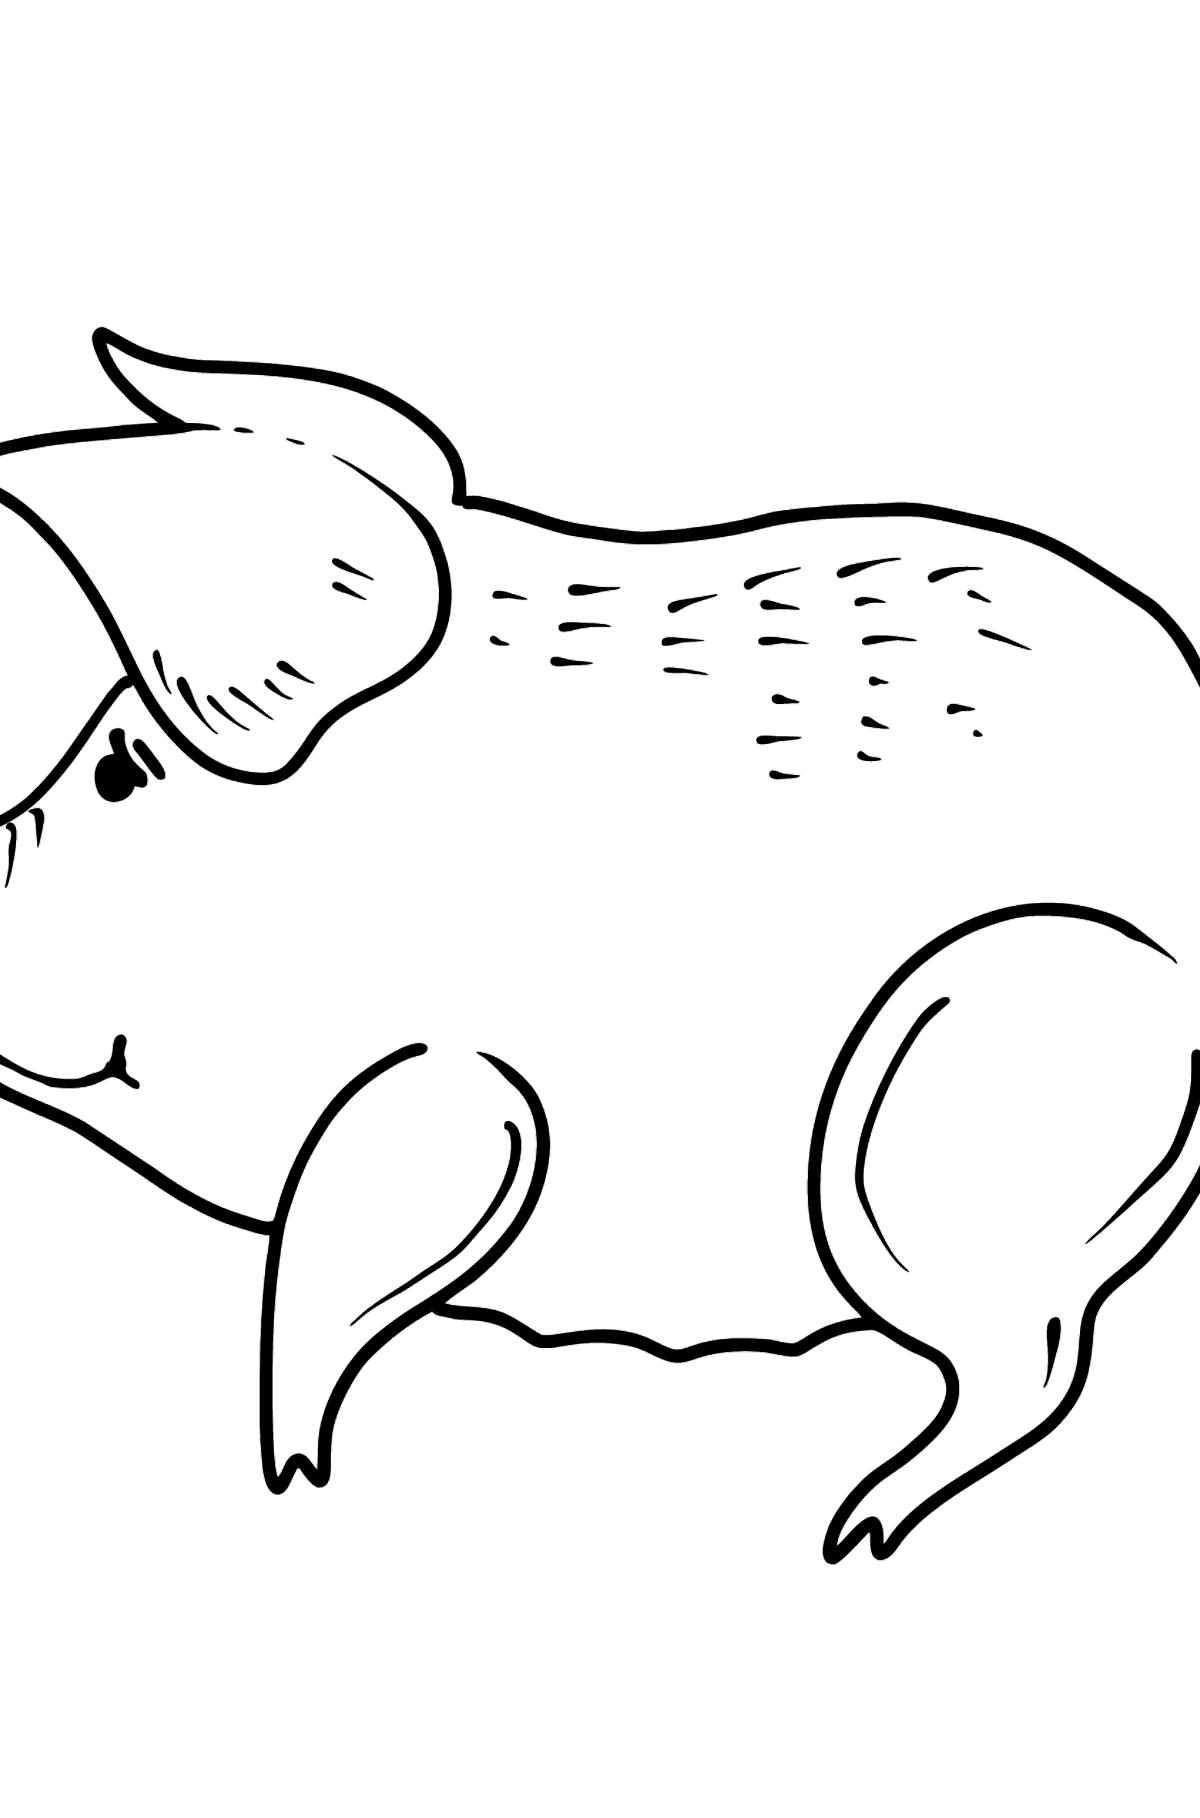 Pig coloring page - Coloring Pages for Kids